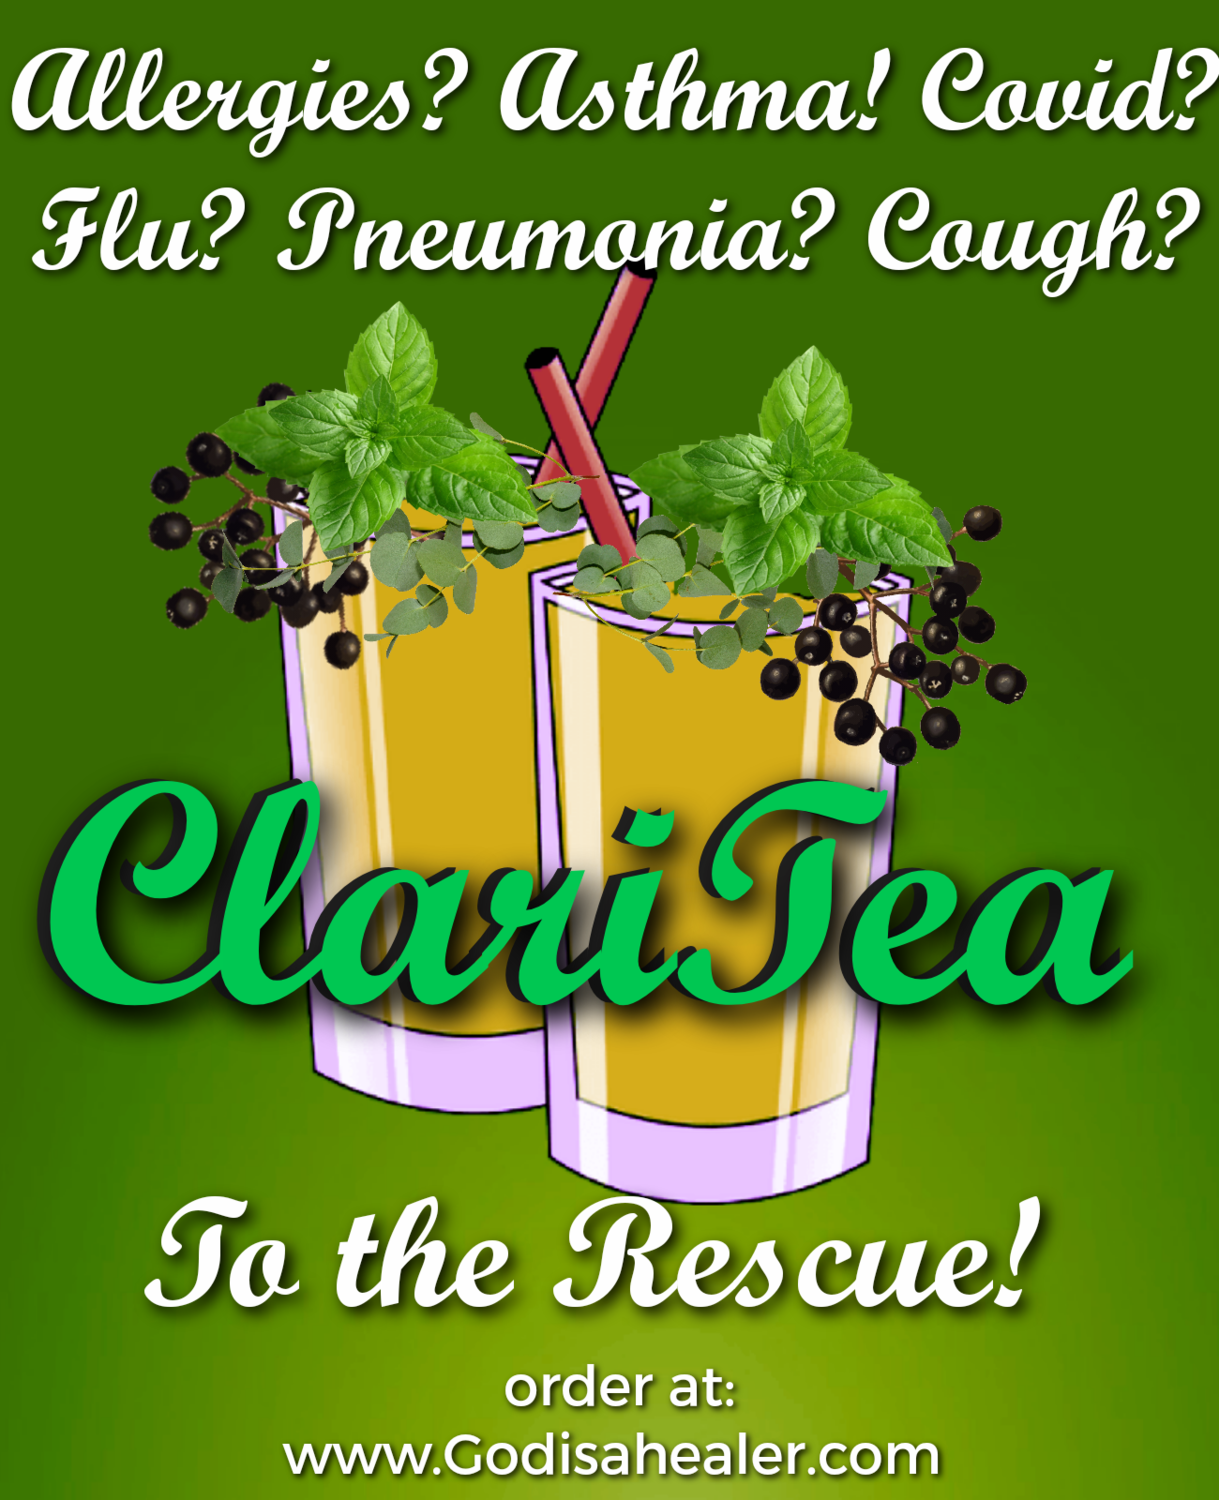 (ClariTea) One Gallon Tea bag Allergy relief, lung repair for any lung issues, removes mucus buildup cough/sore throat quickly. This was the tea of choice at the height of the Covid pandemic.